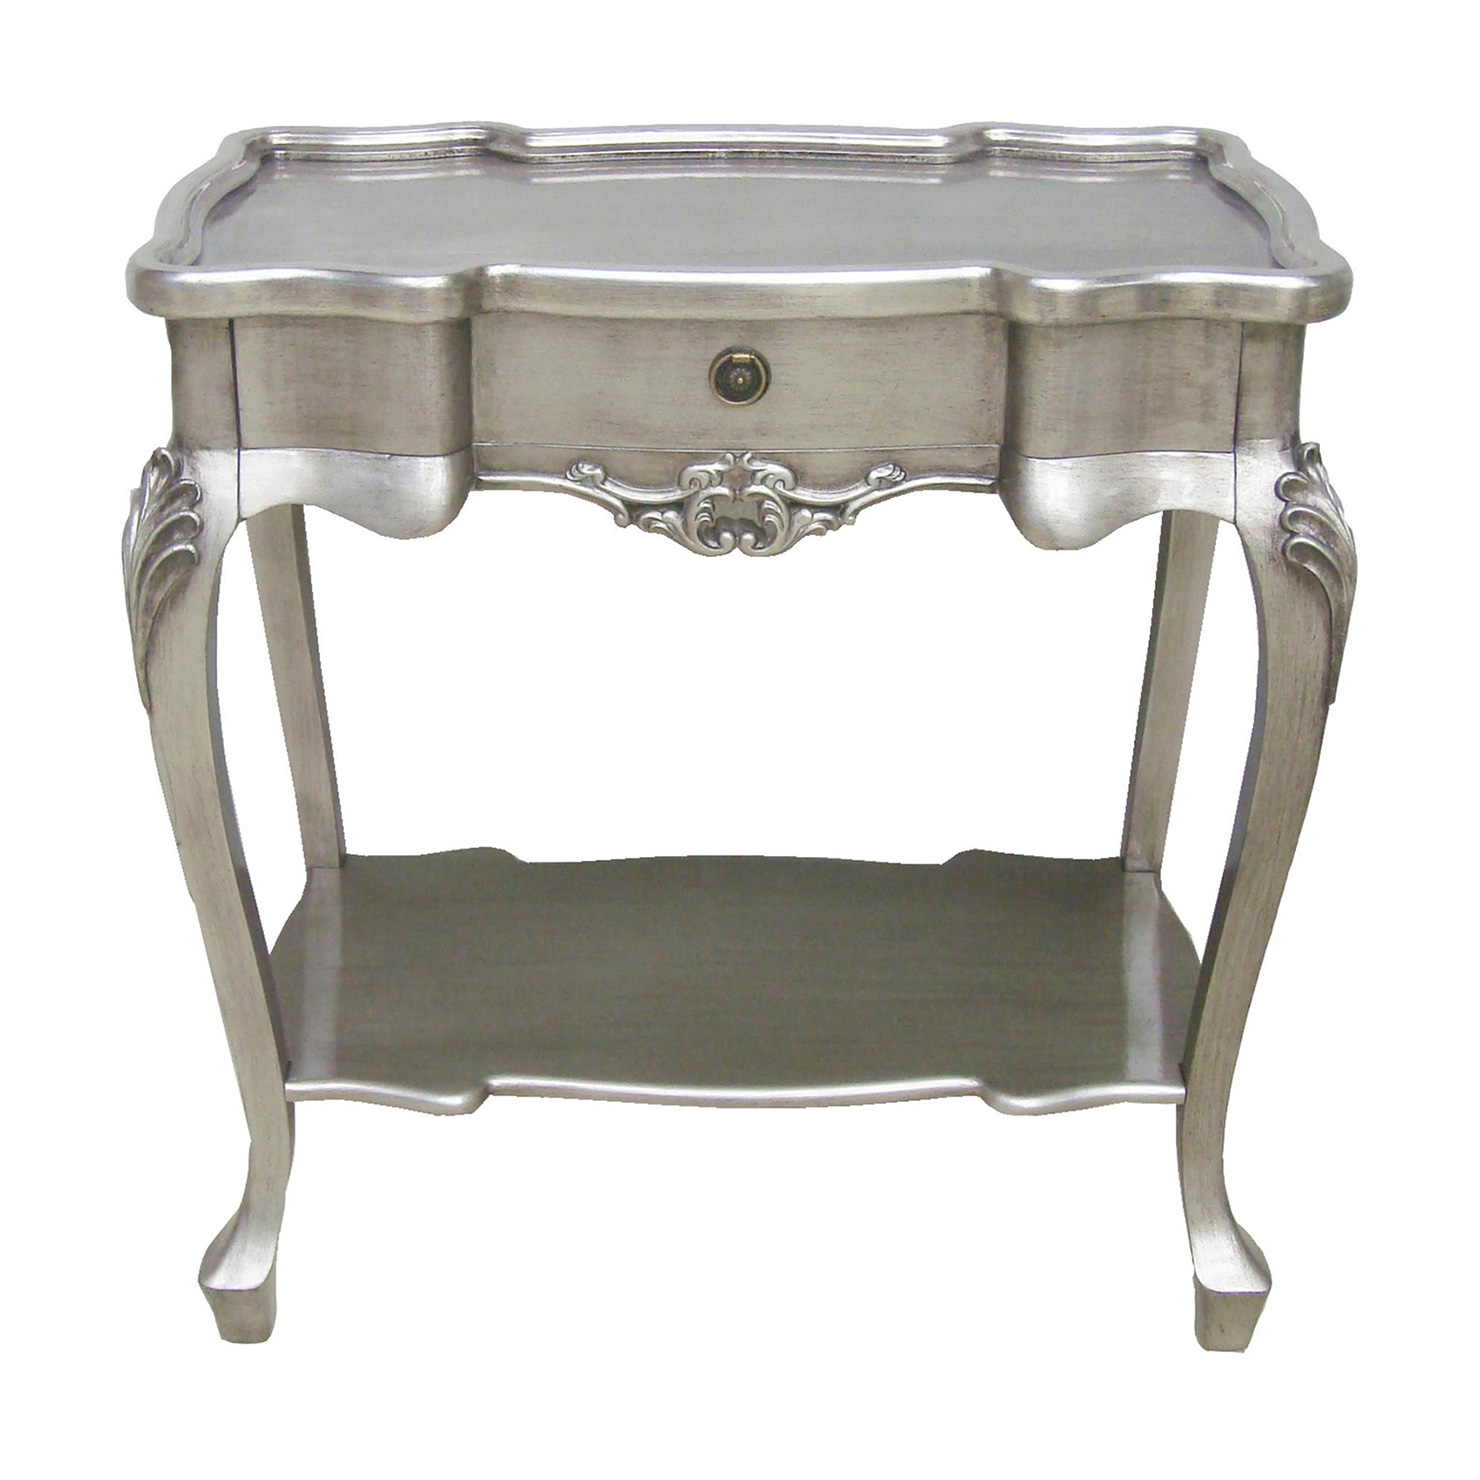 laura ashley nest tables probably terrific real vintage style old and mirrored silver accent table with round furniture shelves drawer lock plus tray top ideas end small danby